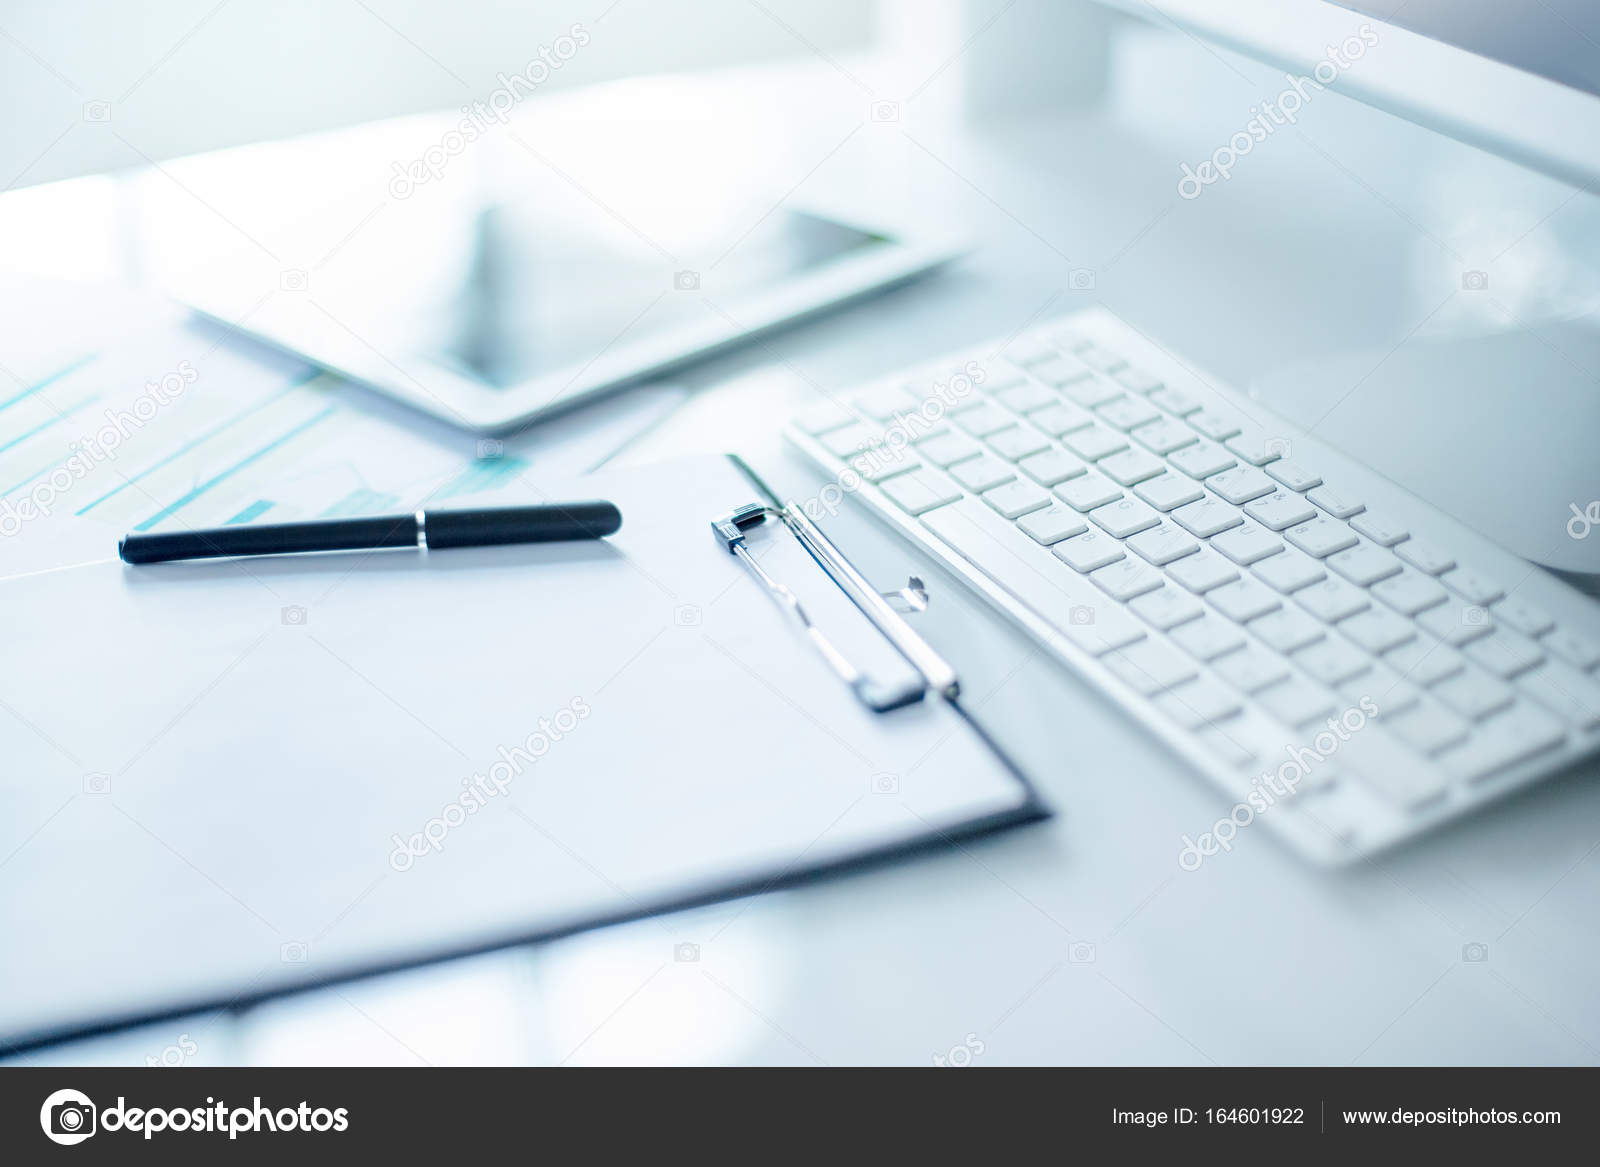 The Abstract Office Desktop Stock Photo